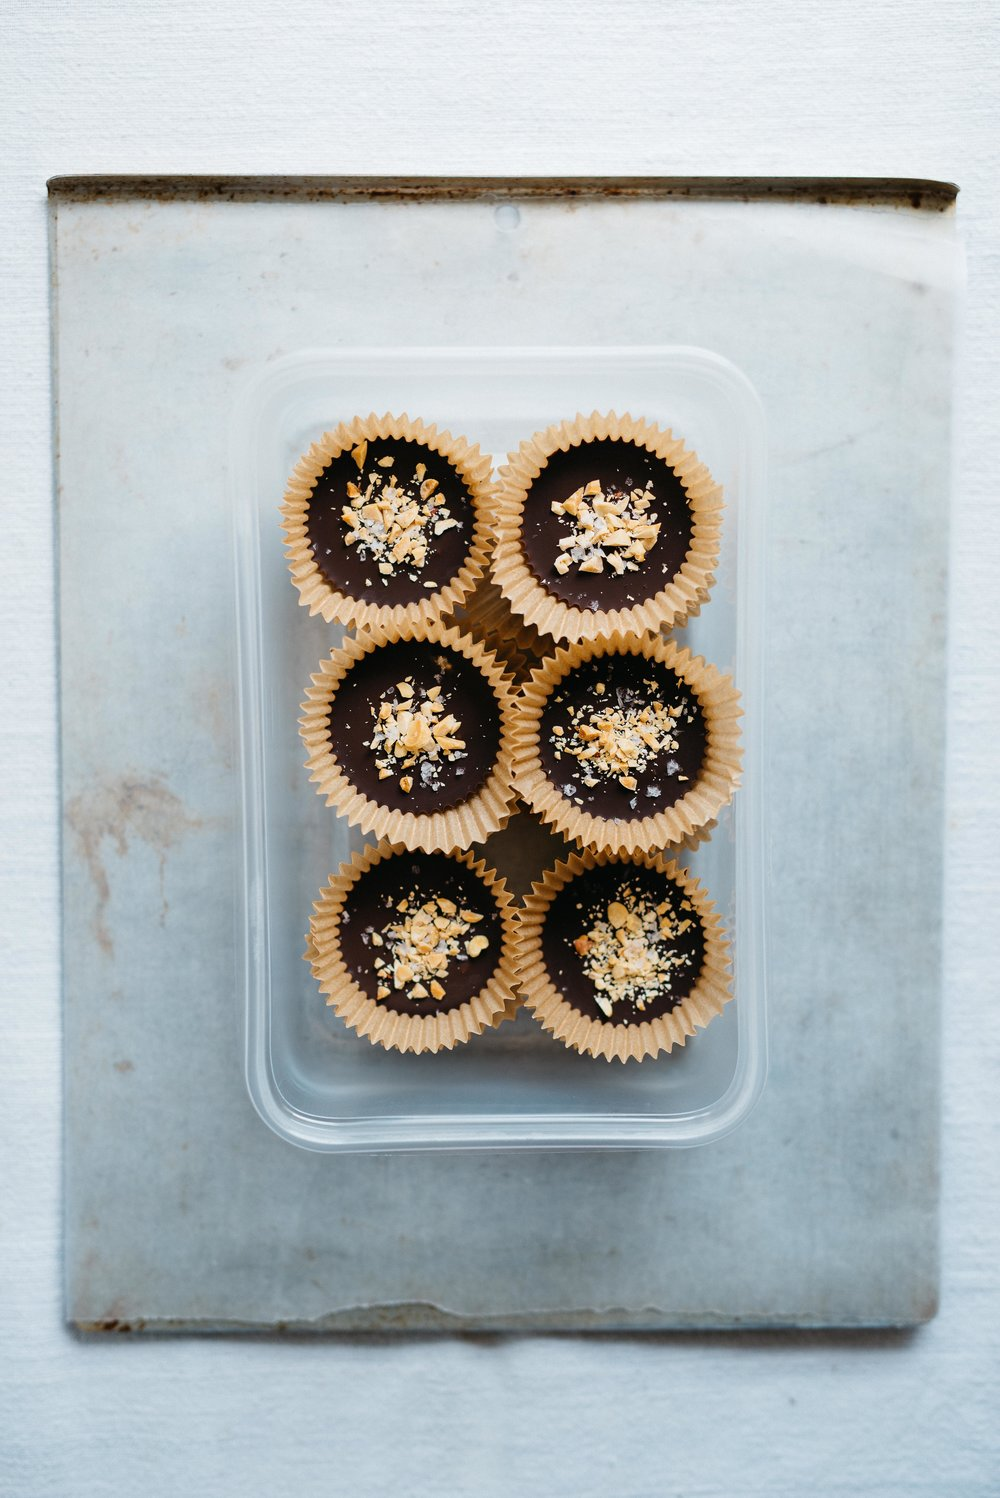 Summer Fridays!: Frozen Chia Seed Peanut Butter Cups | dolly and oatmeal #vegan